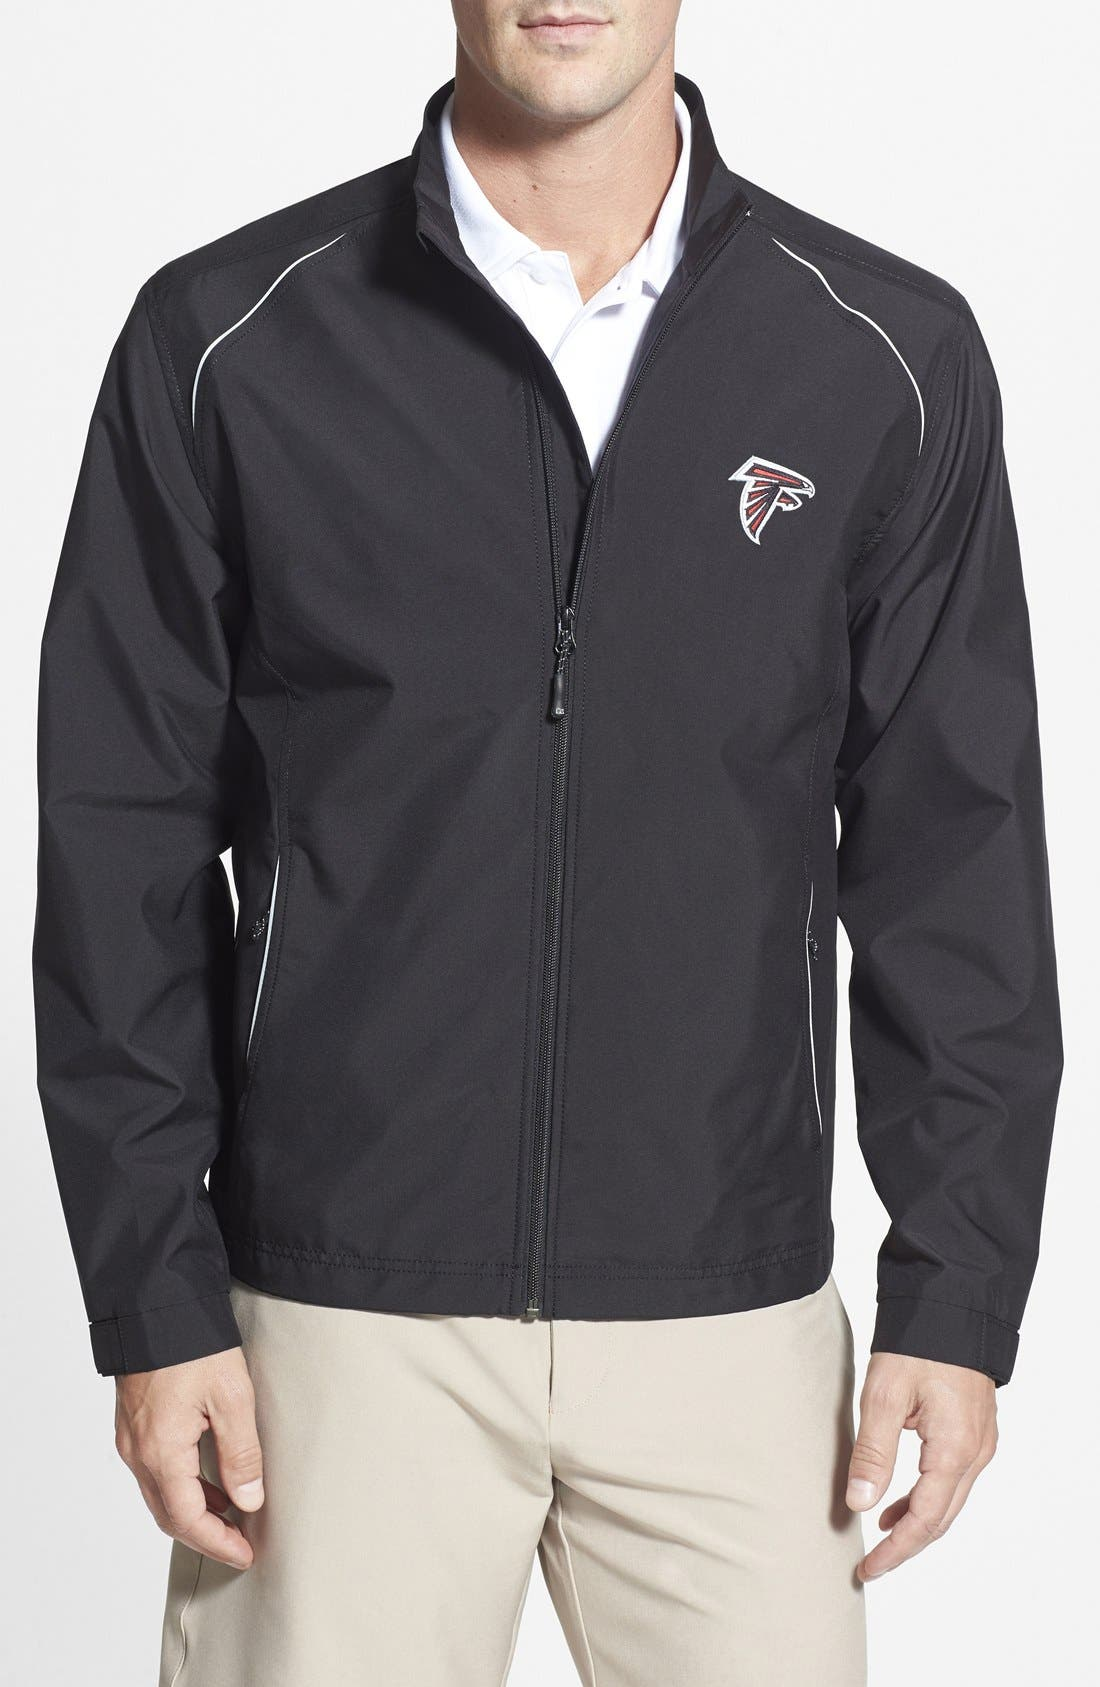 Main Image - Cutter & Buck Atlanta Falcons - Beacon WeatherTec Wind & Water Resistant Jacket